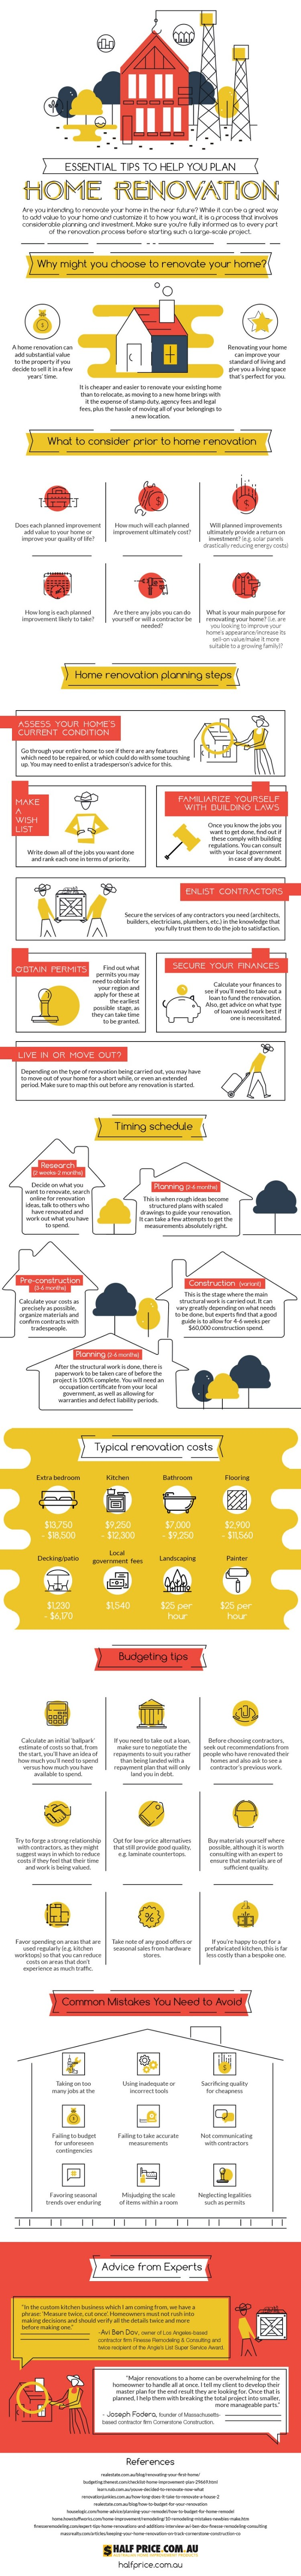 Essential Tips to Help You Plan Home Renovation